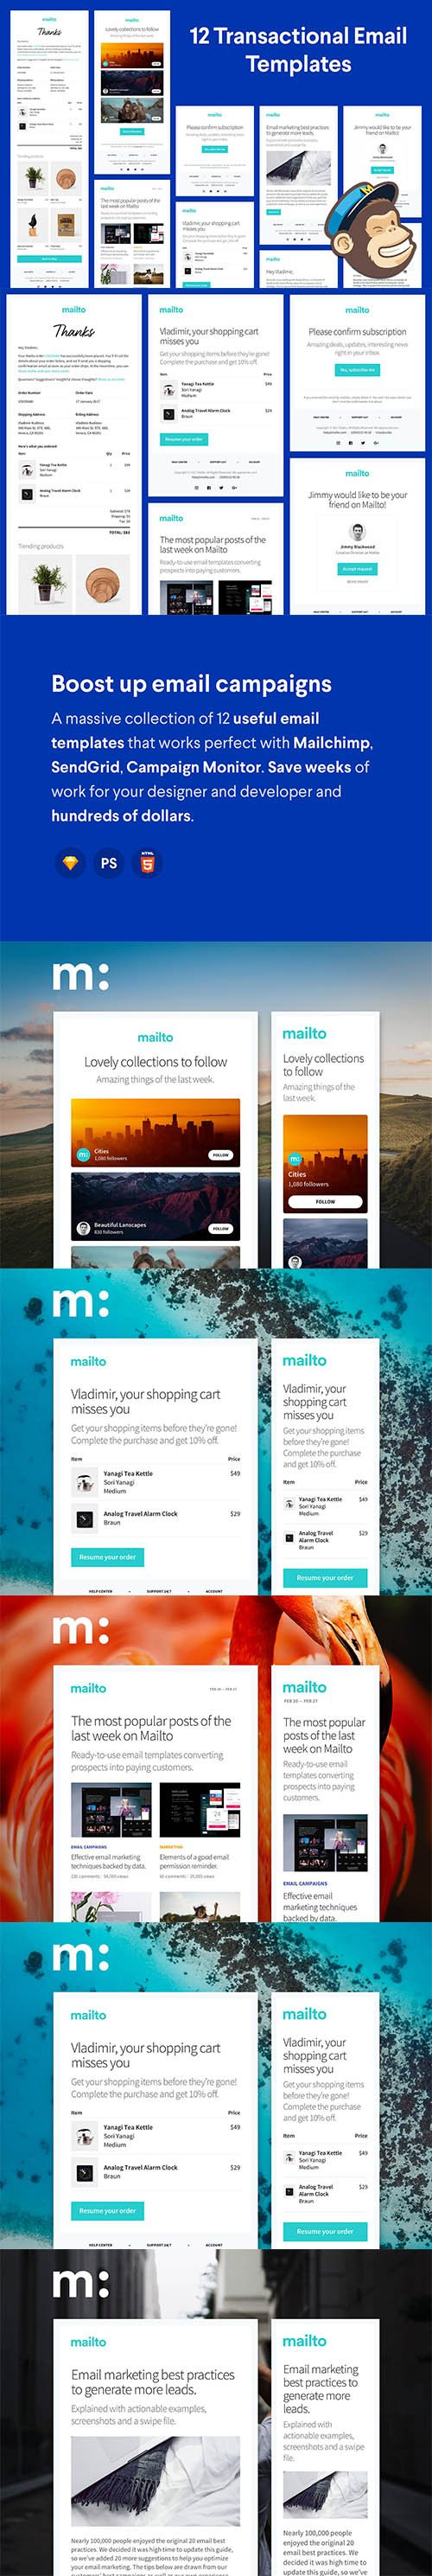 Mailto - 12 Email Templates Huge Bundle - CM 1337352